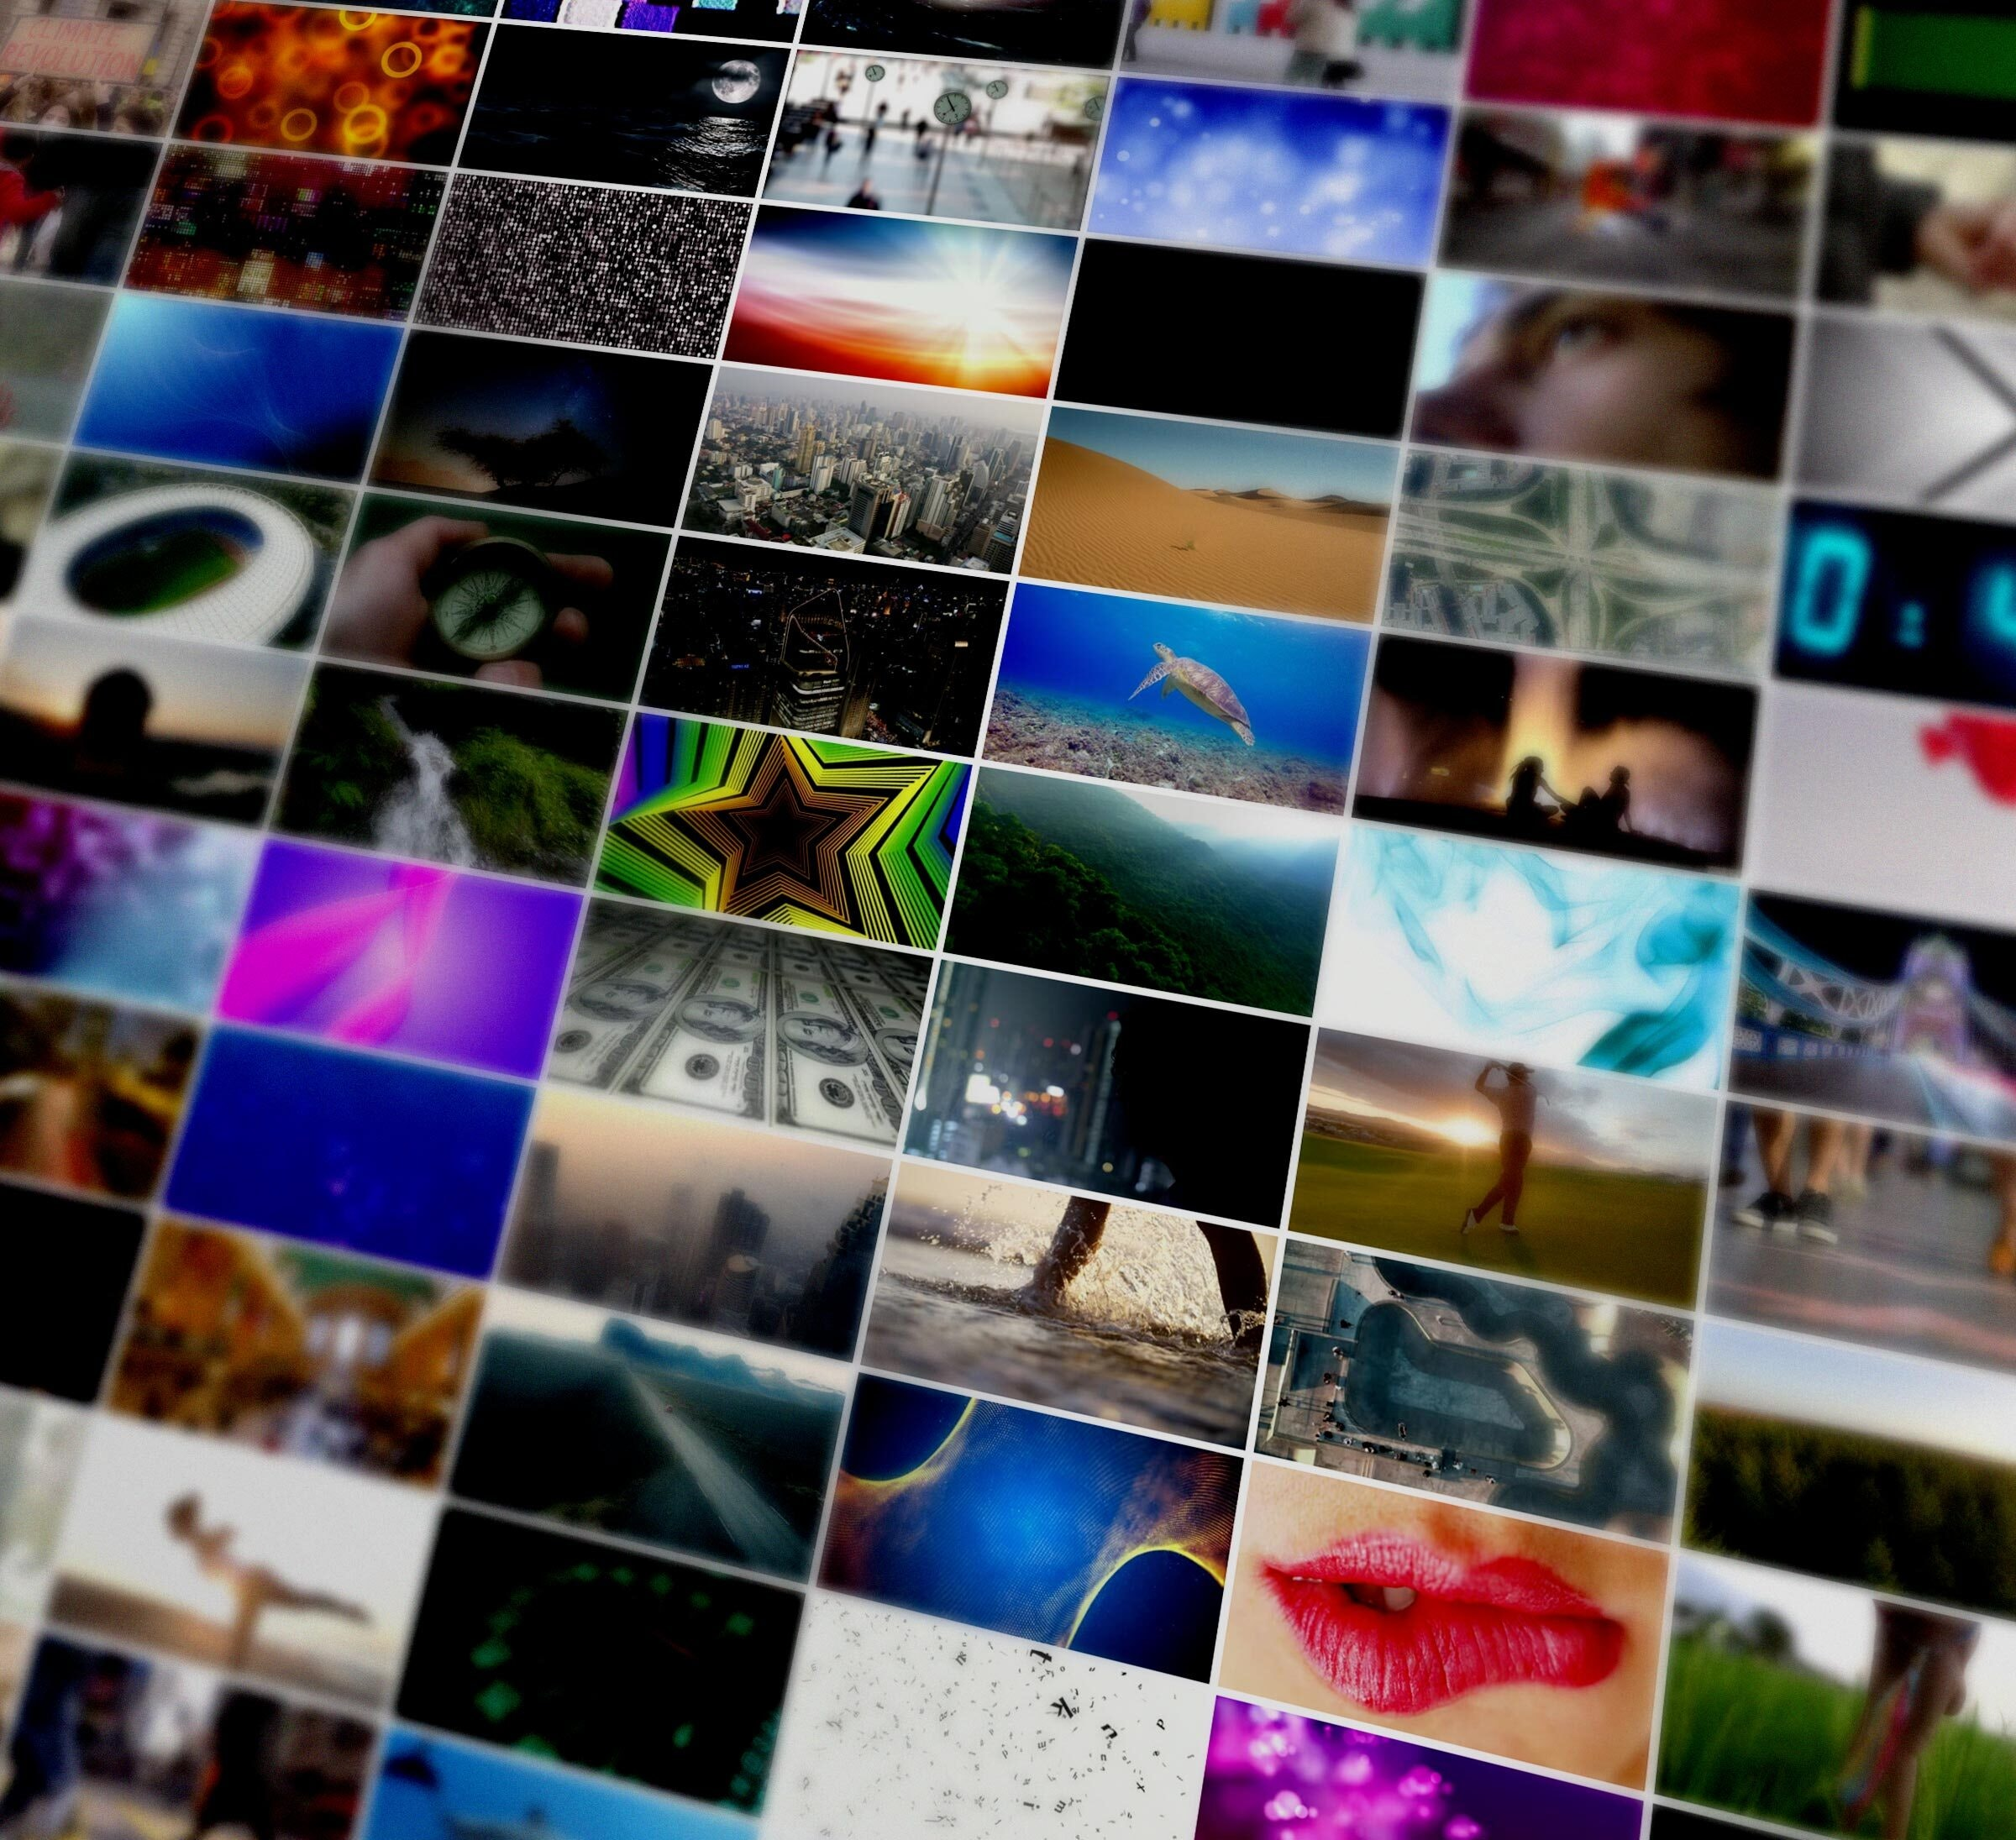 Videvo Free Stock Videos Motion Graphics Music Sound Effects Product Hunt 4,436 likes · 14 talking about this. free stock videos motion graphics